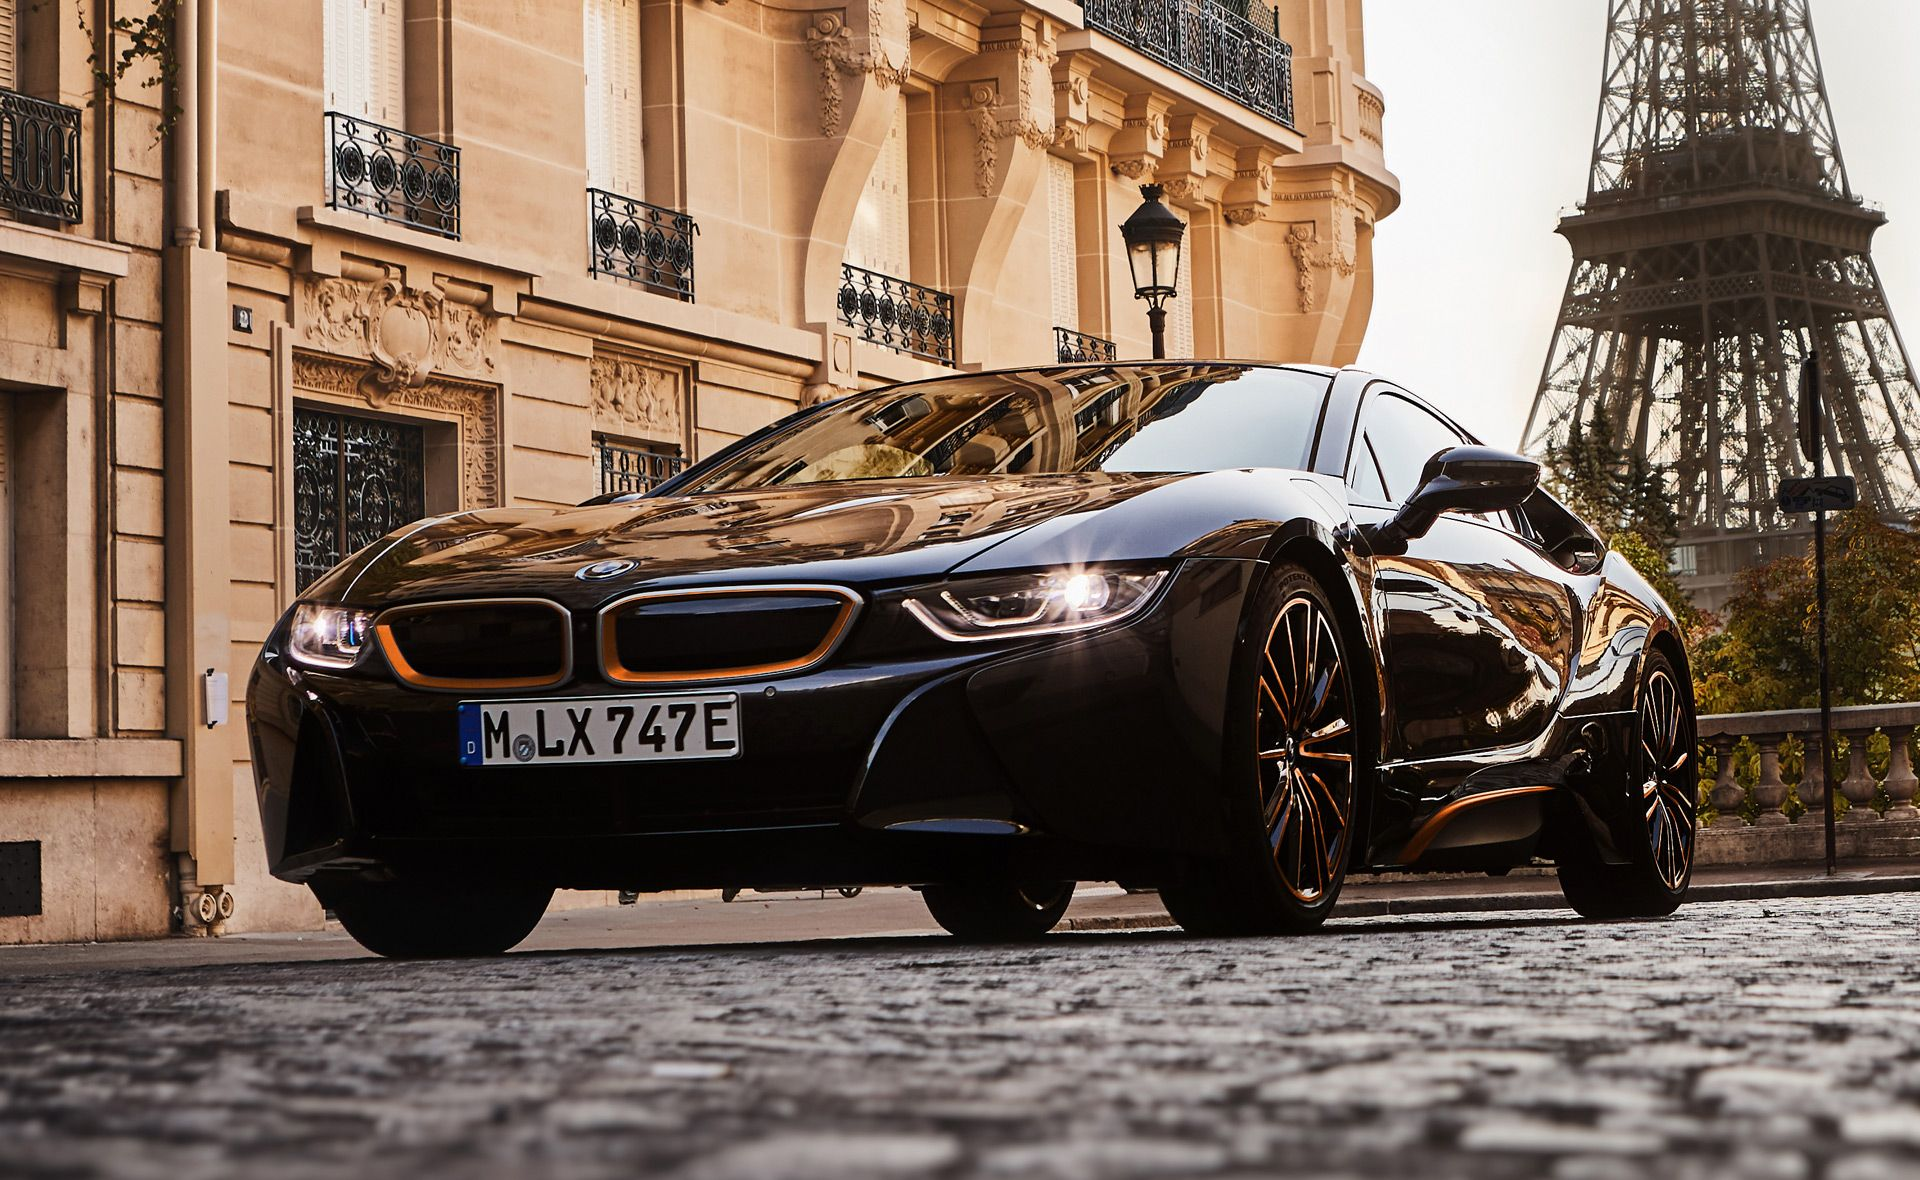 Bmw S I8 Is On Its Way Out But A Much More Powerful Replacement Could Be Brewing At The M Division In 2020 Bmw I8 Bmw Bmw New Cars